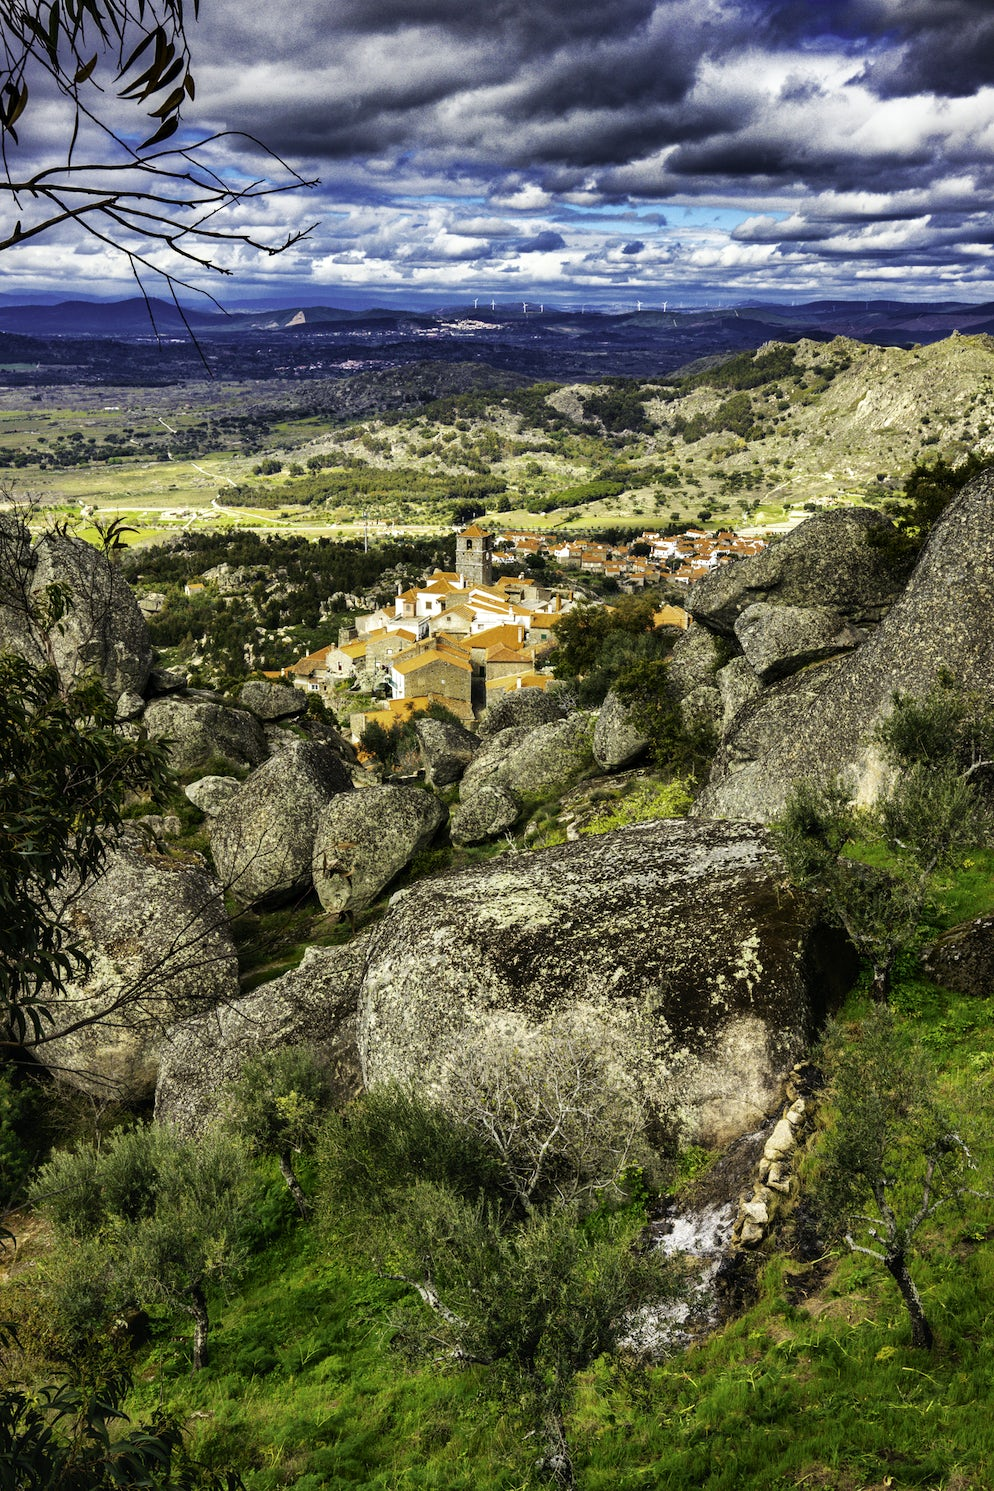 © iStock / Rui T Guedes